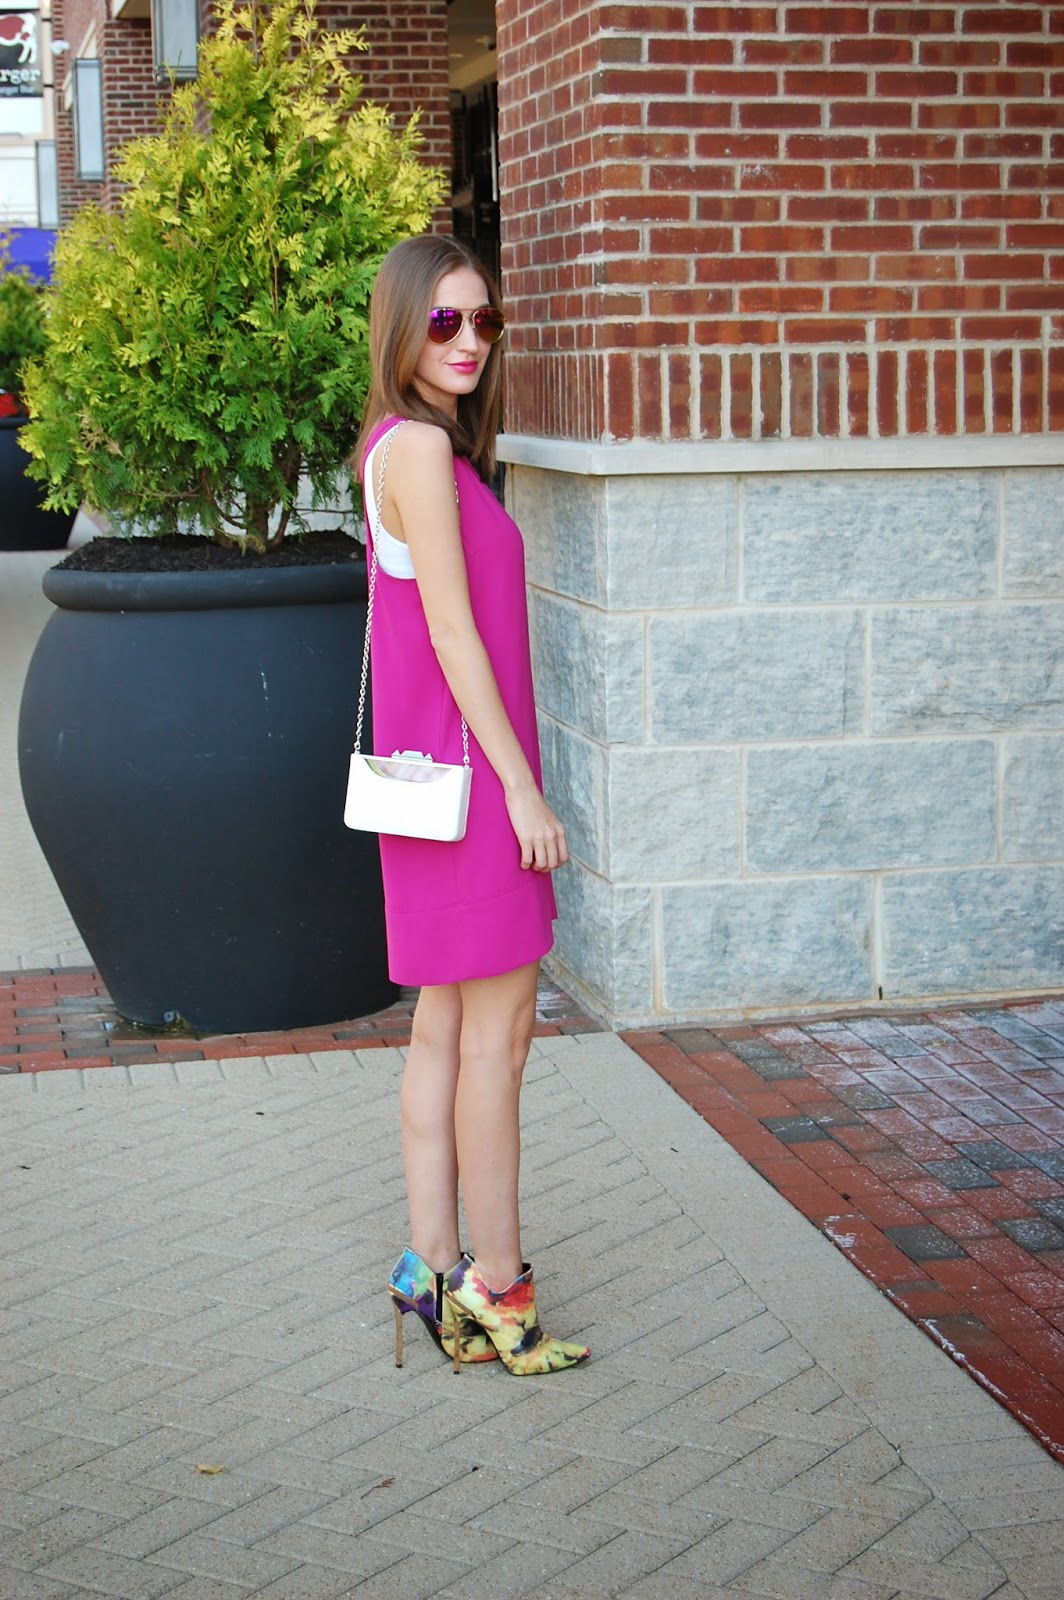 Wearing Tildon Racerback Shift Dress, Nordstrom, Pink summer dress, Wearing Privileged Mulligan floral booties, BCBG Maxazria Lucite Clutch, Pink and Orange Mirrored Sunglasses